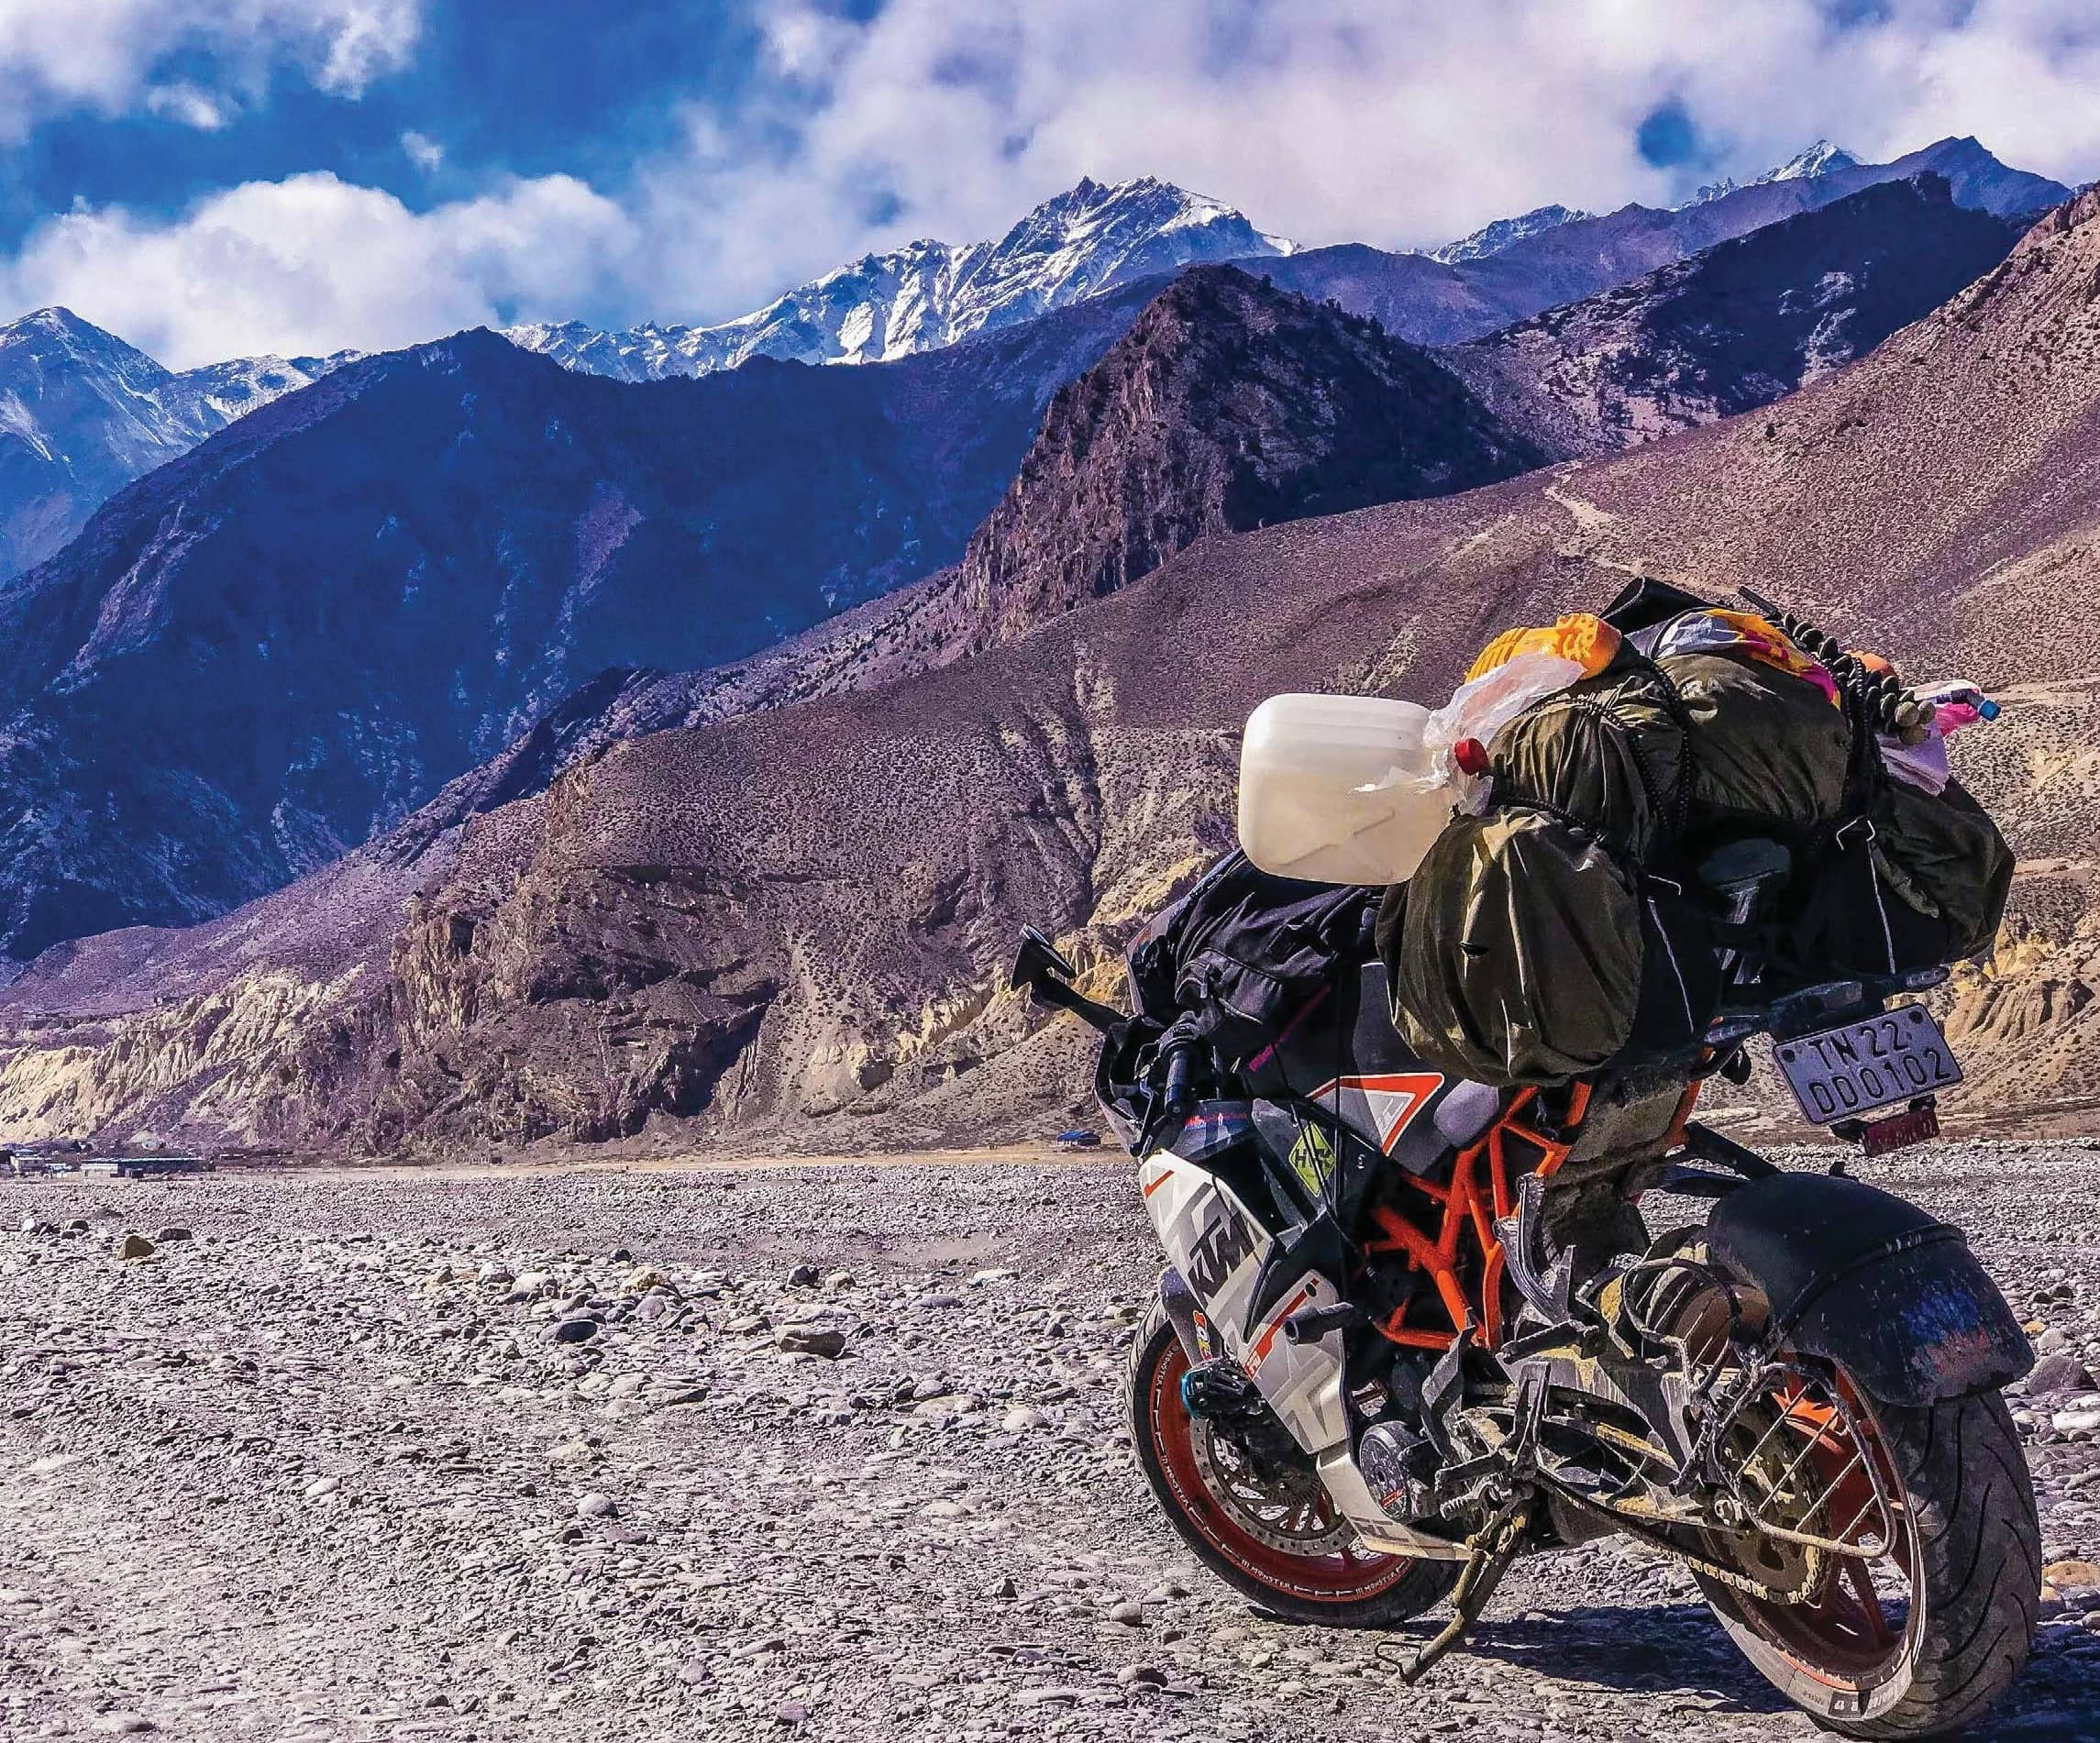 OF MOTORCYCLES, MOUNTAINS, AND 'MUSTANG'